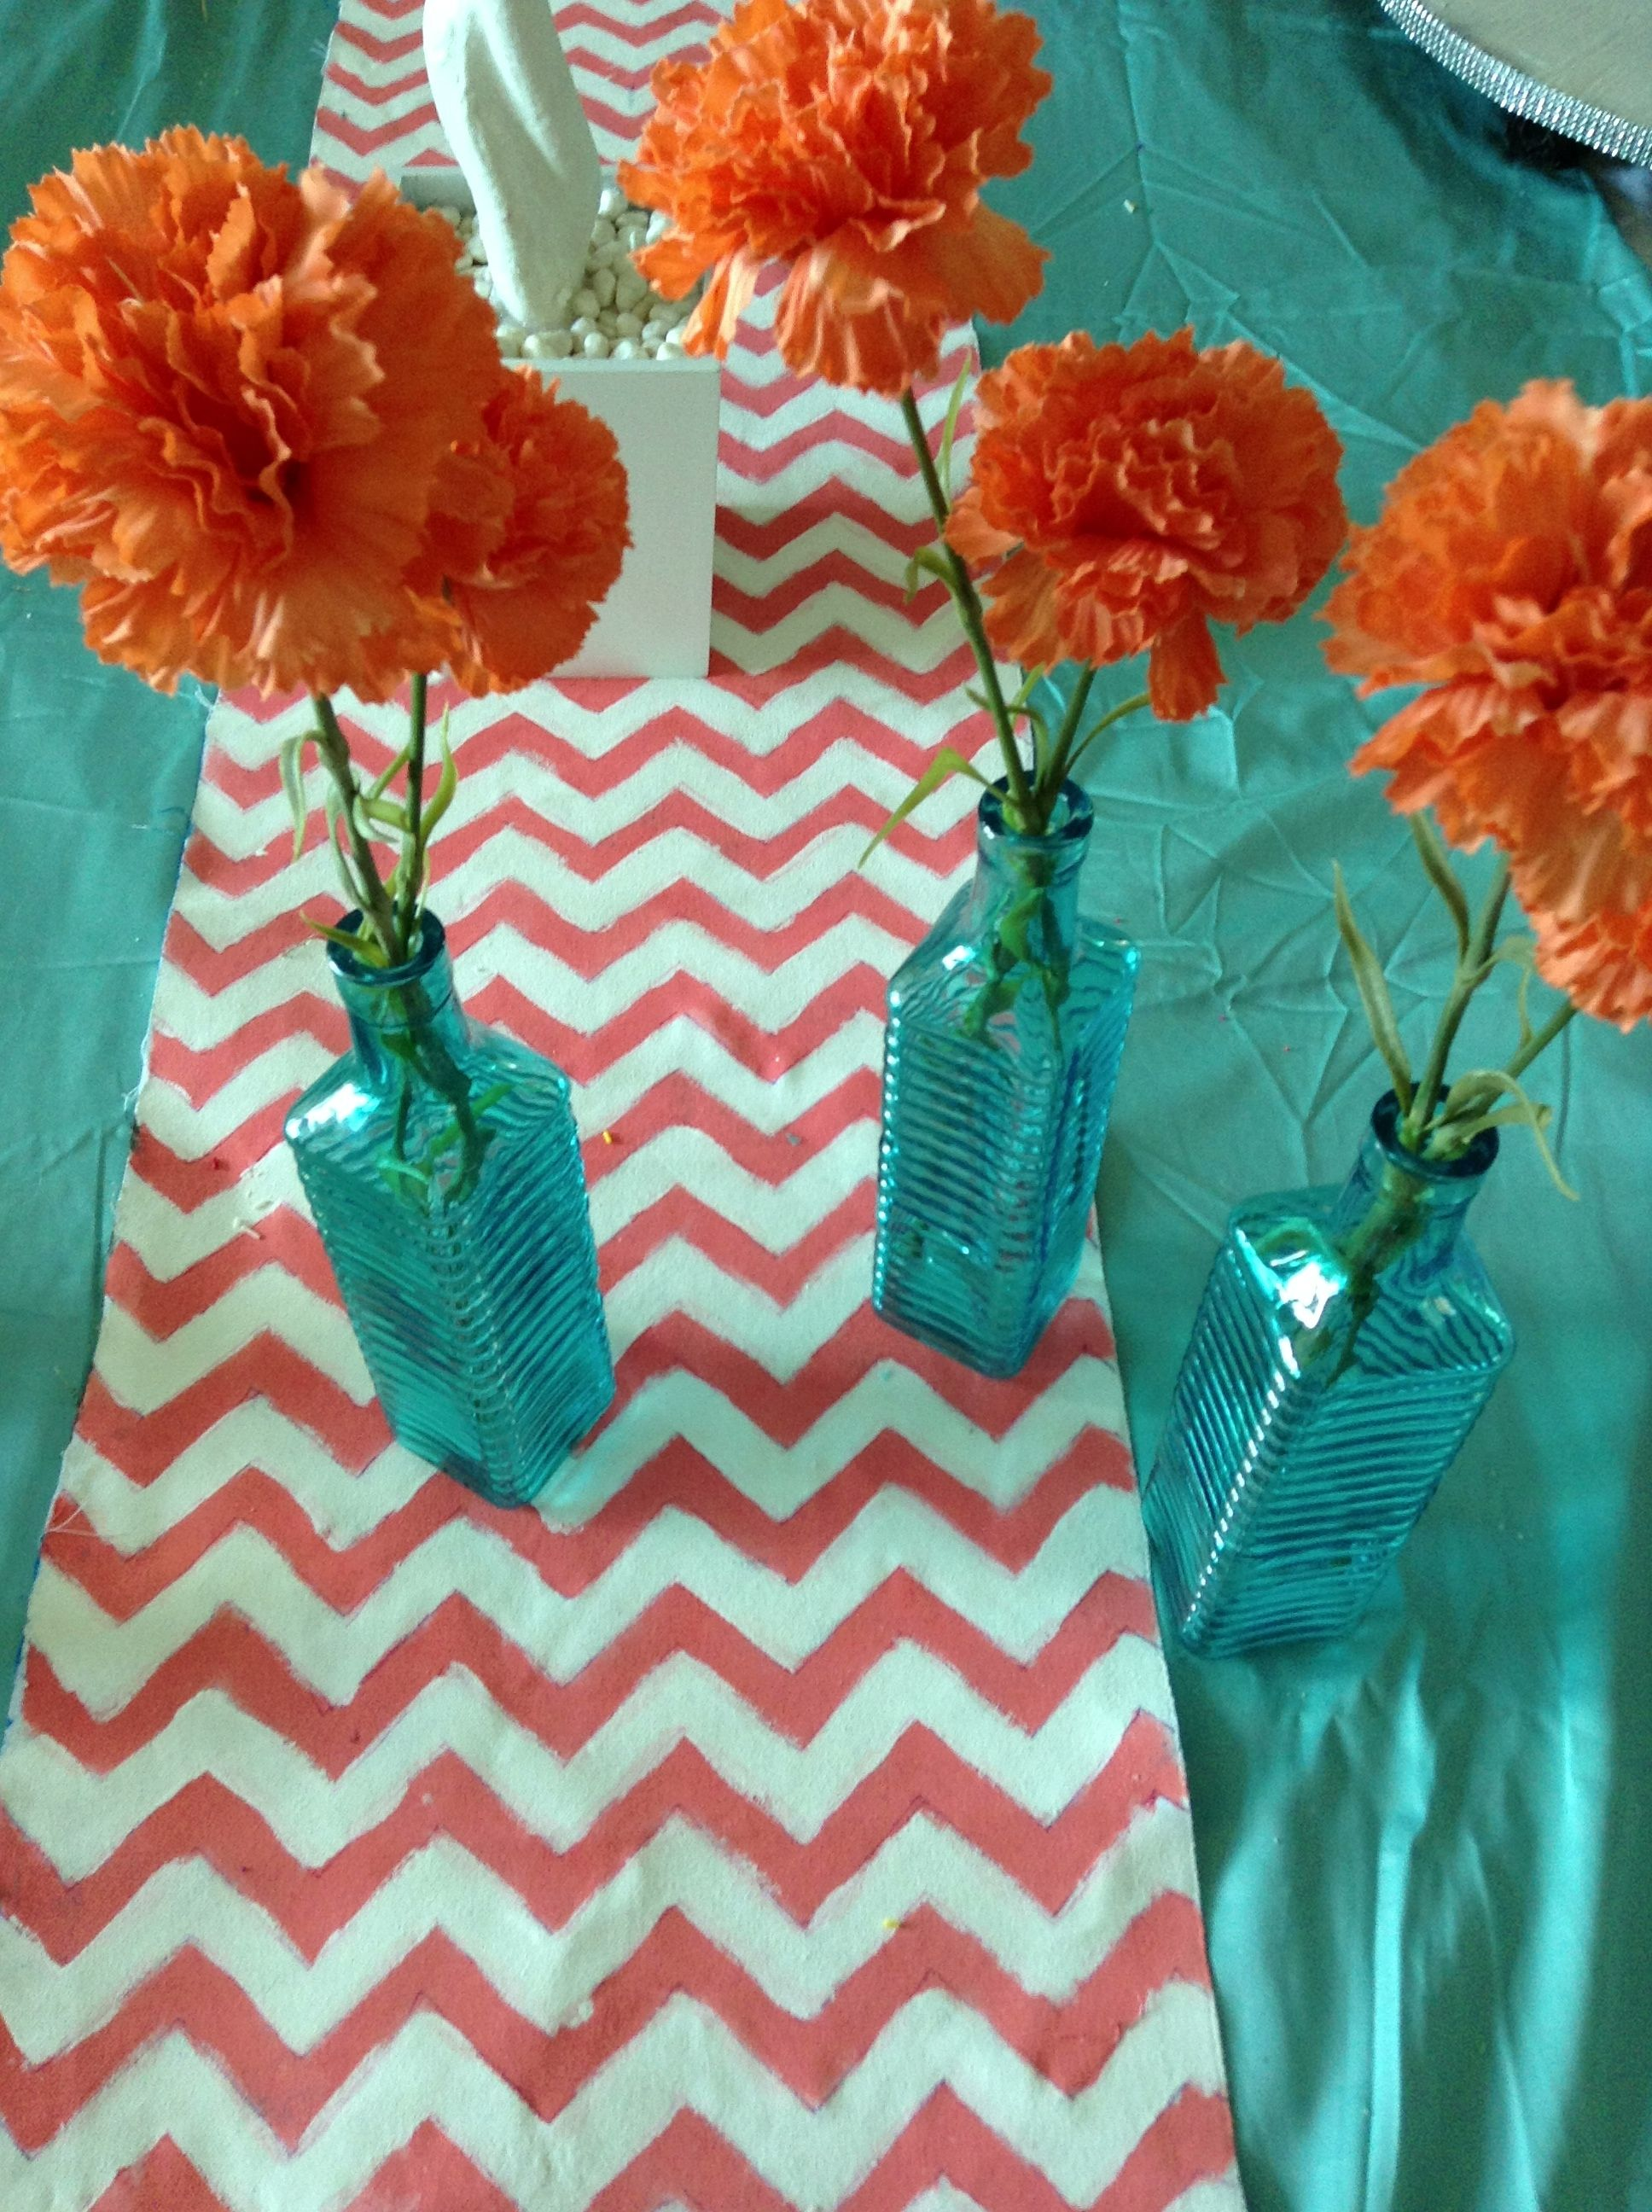 DIY Chevron Coral U0026 Aqua Table Runners With Aqua Vases And Coral Flowers